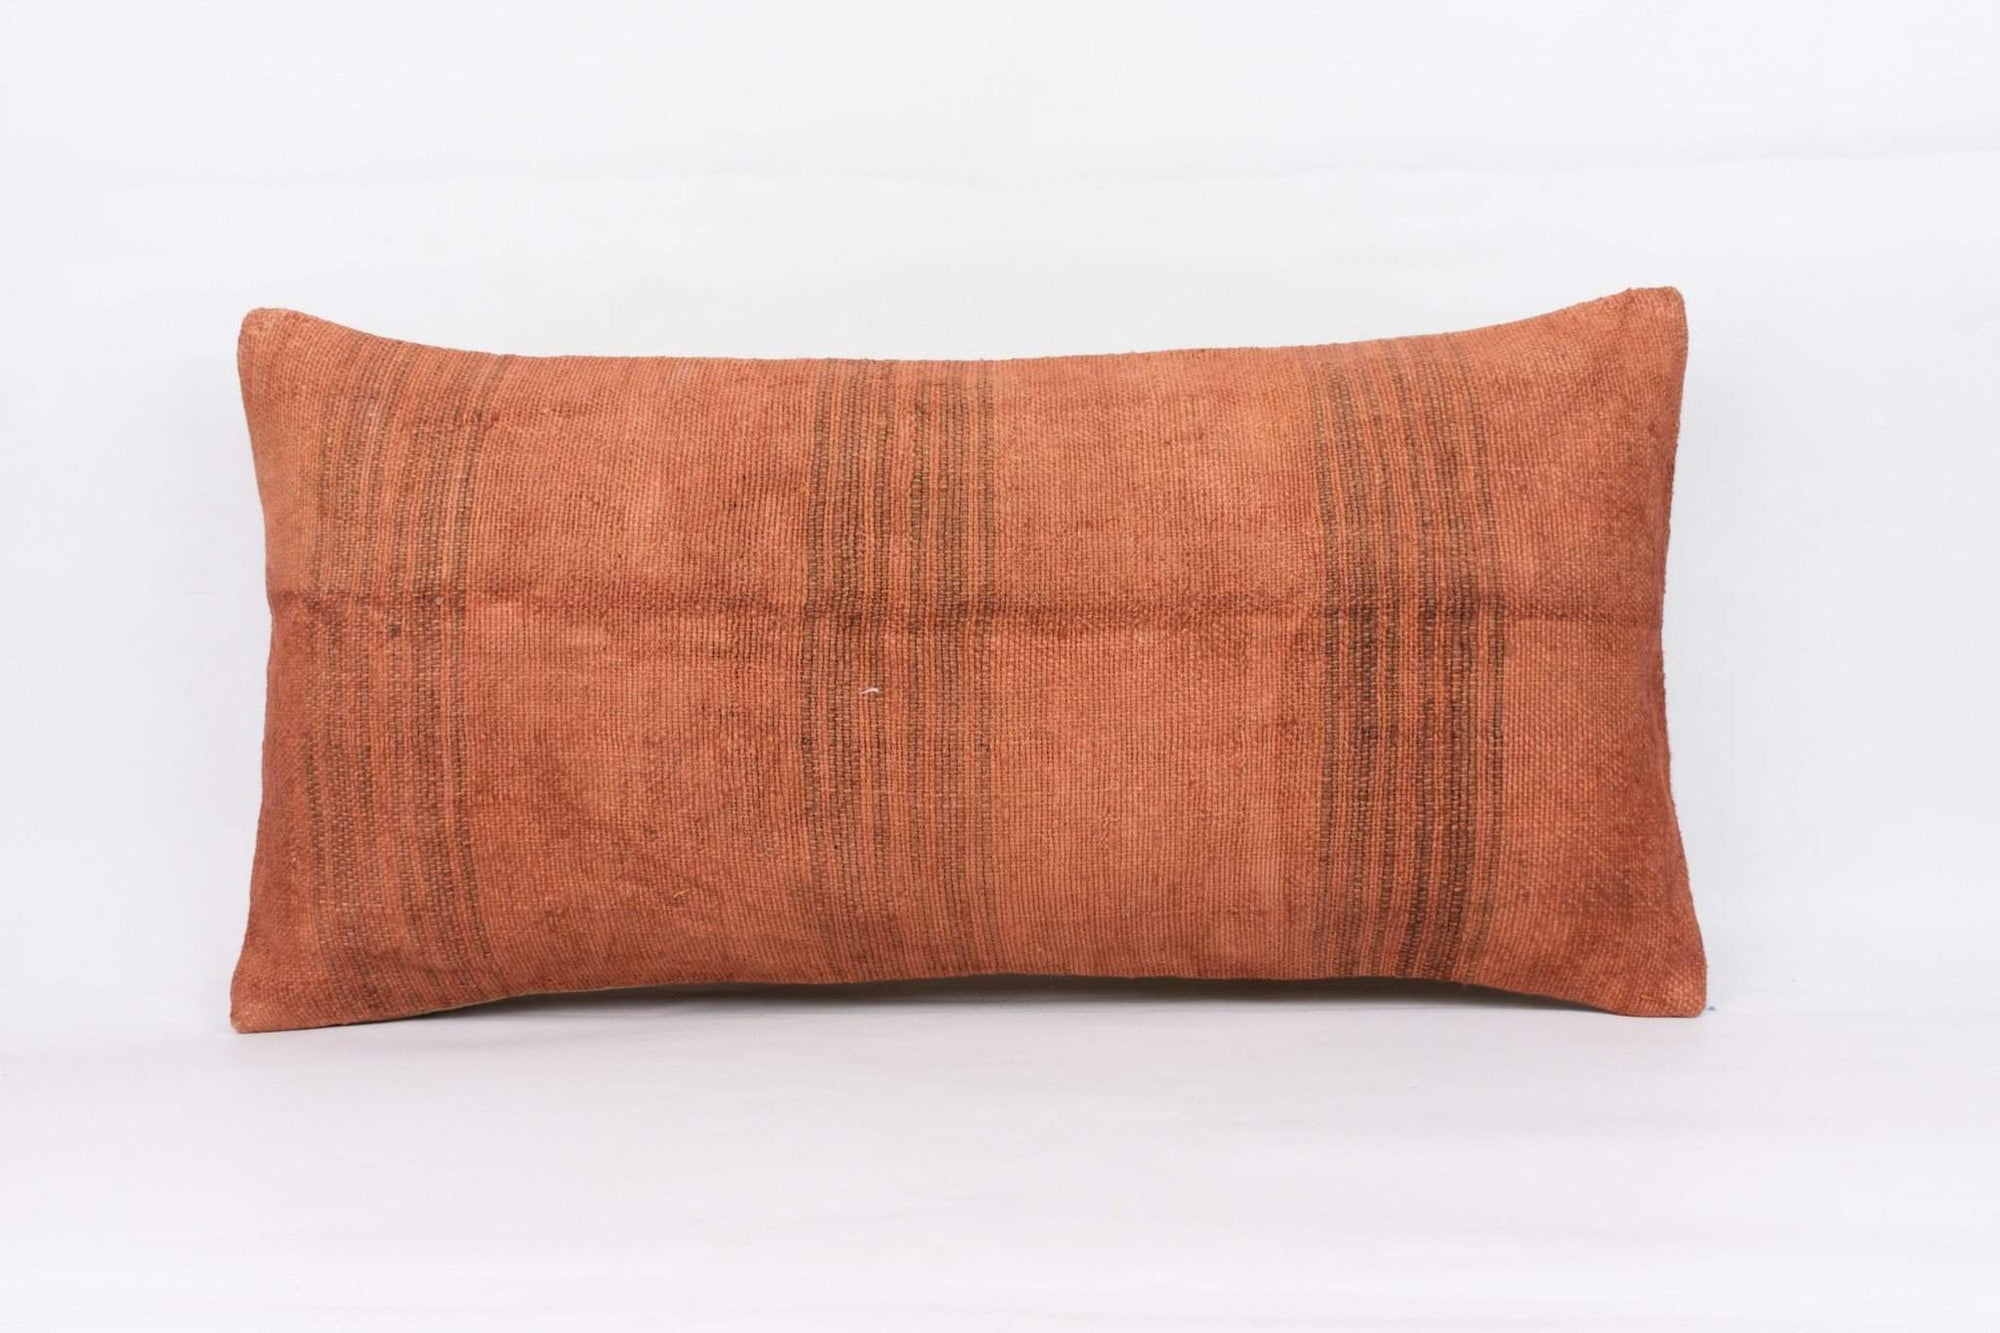 Plain Brown Kilim Pillow Cover 12x24 4180 - kilimpillowstore  - 1